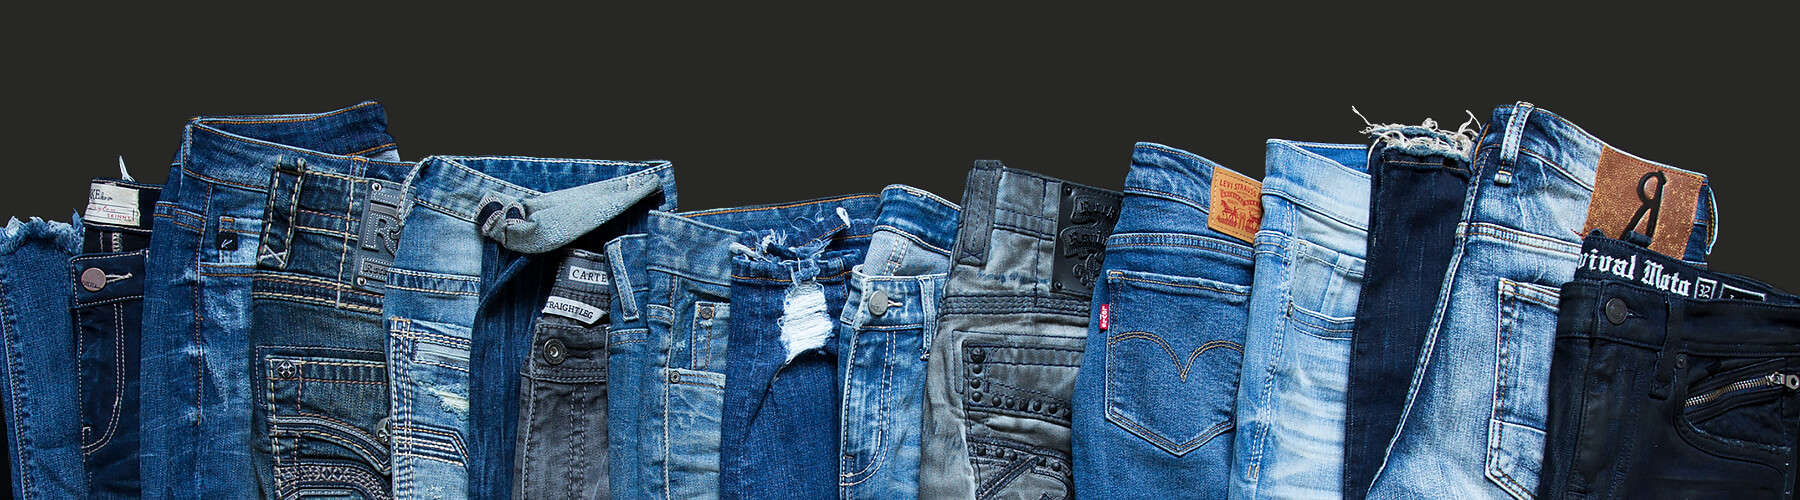 check out buckle jeans